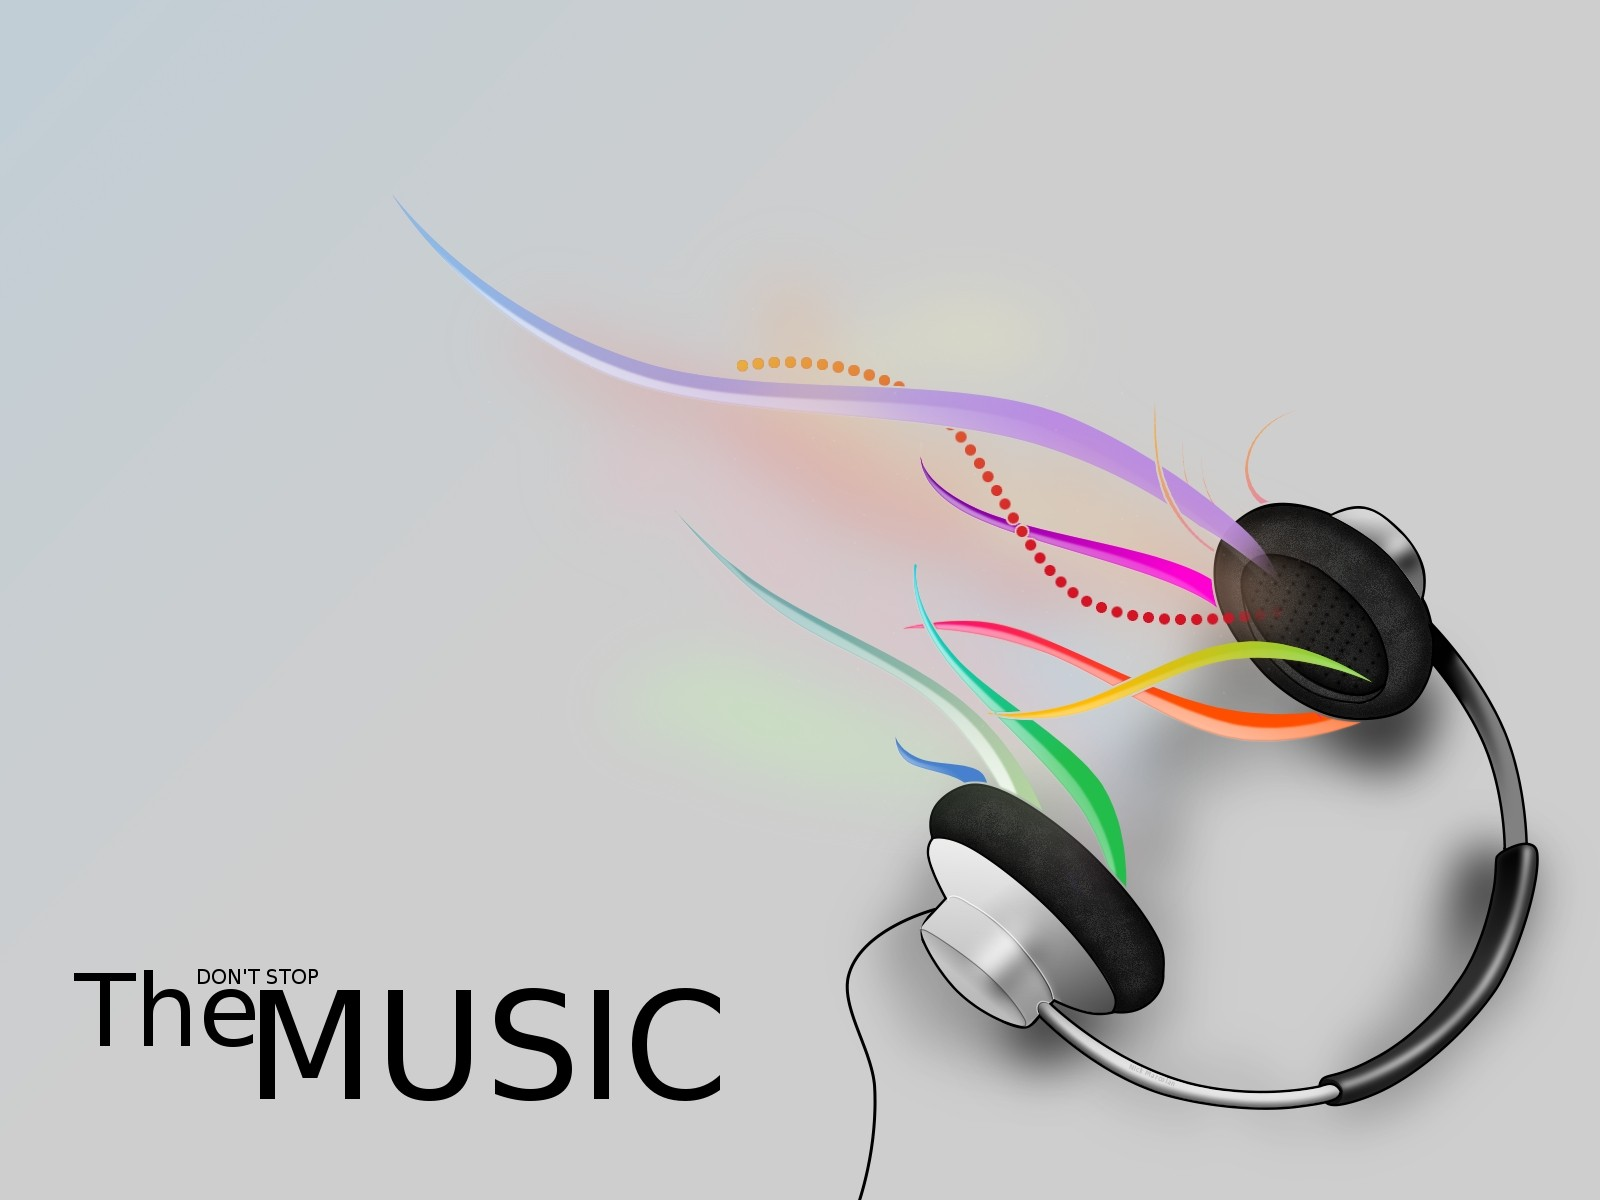 Don't Stop The Music Wallpaper 1600x1200 px